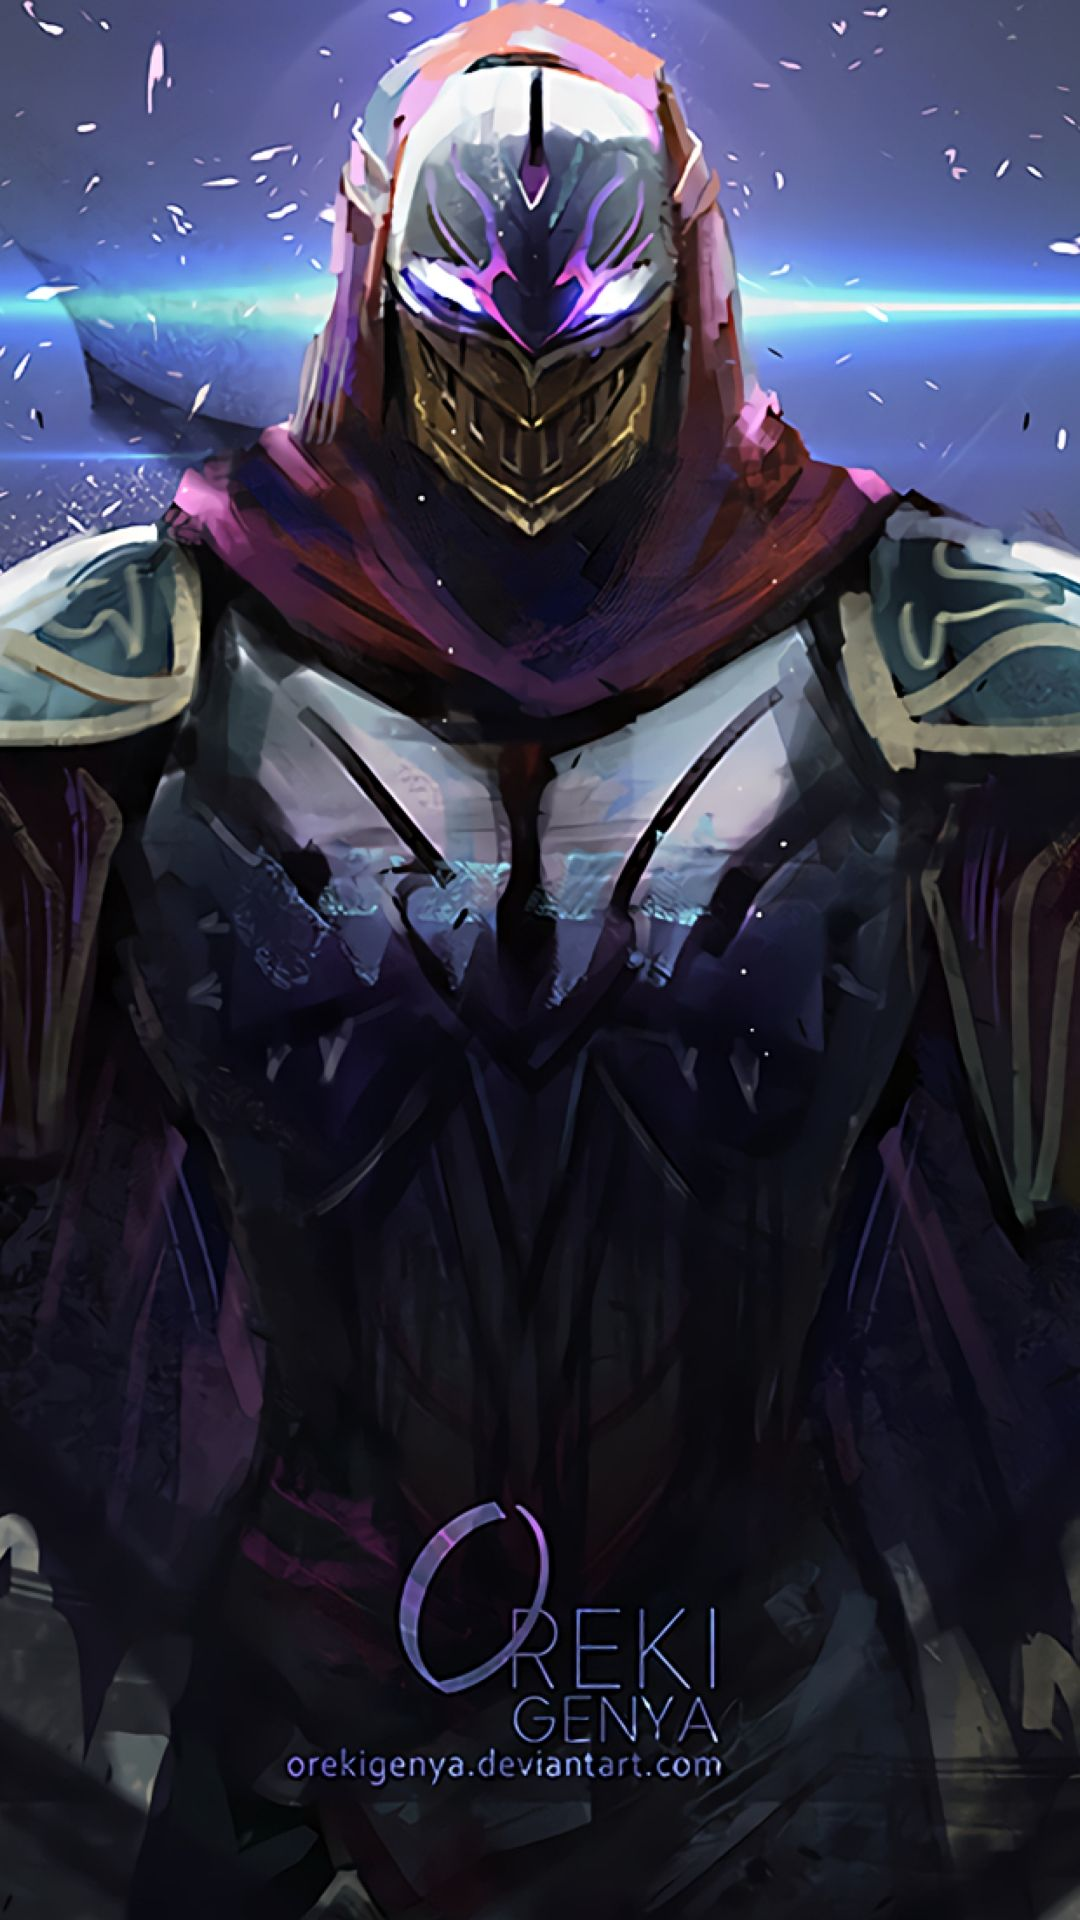 Zed League Of Legends Background Image In 2020 League Of Legends Background Images Lol League Of Legends